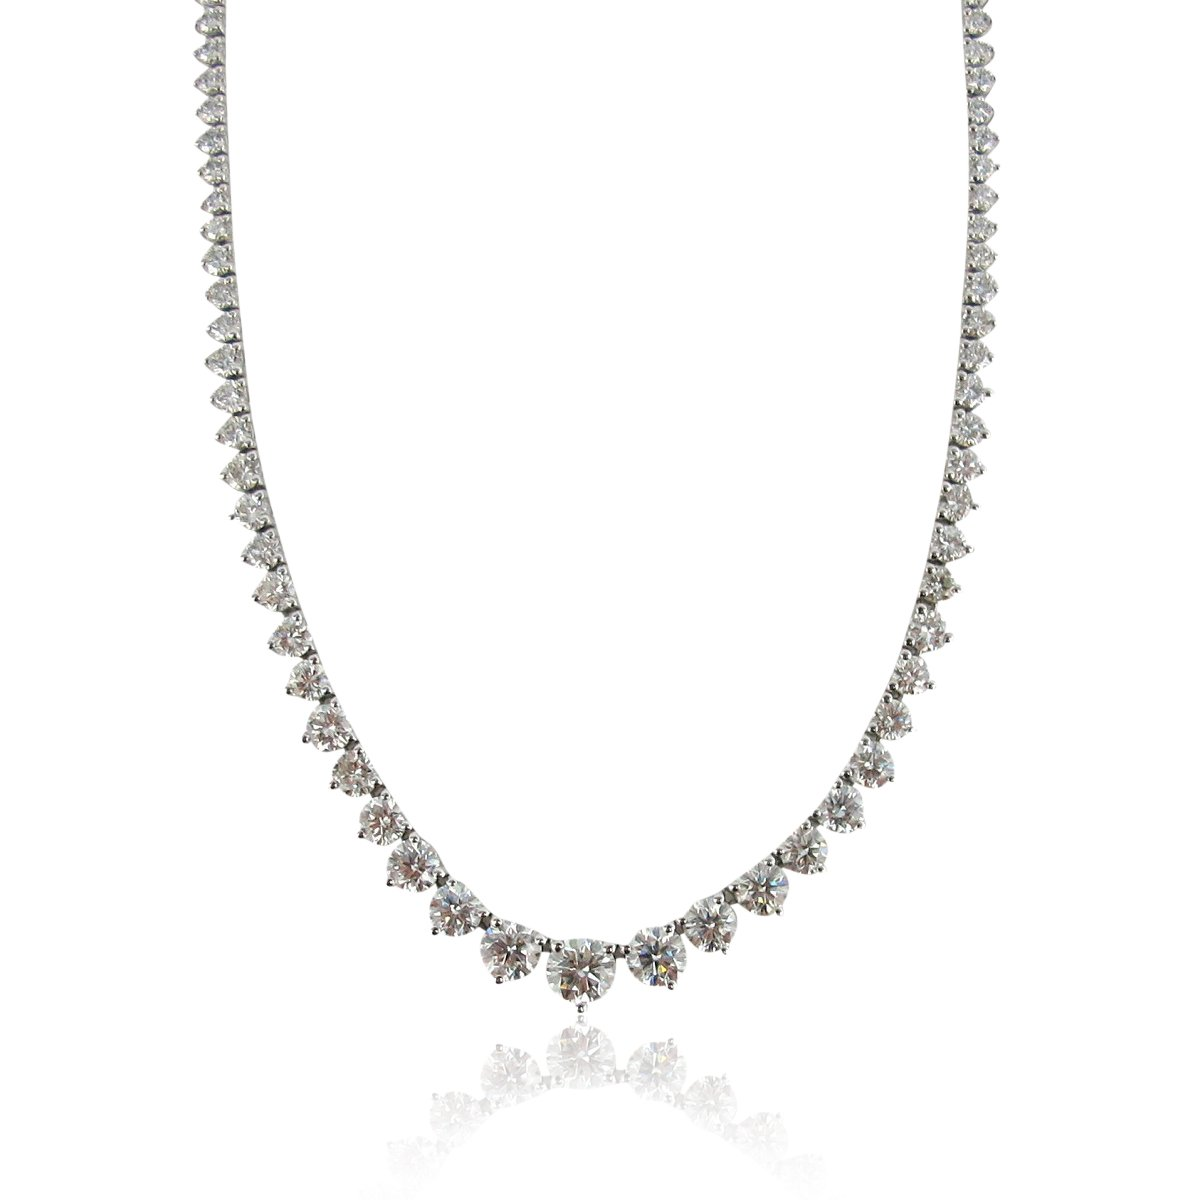 6.08carats Rivera Diamond Necklace 6835-41D  213122f8eaef